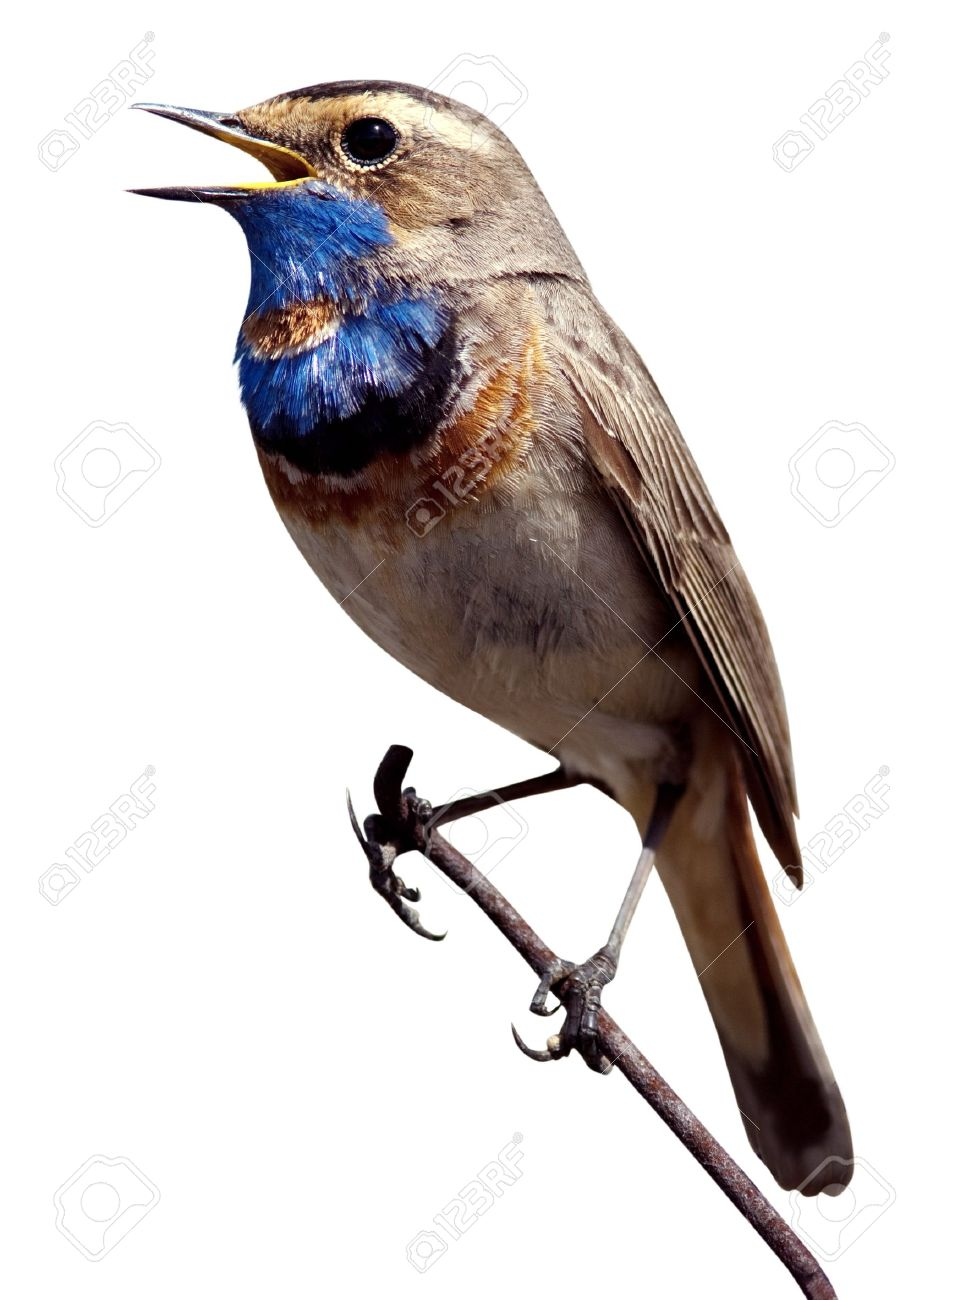 The Beautiful Bird Sings A Spring Song In The Wild